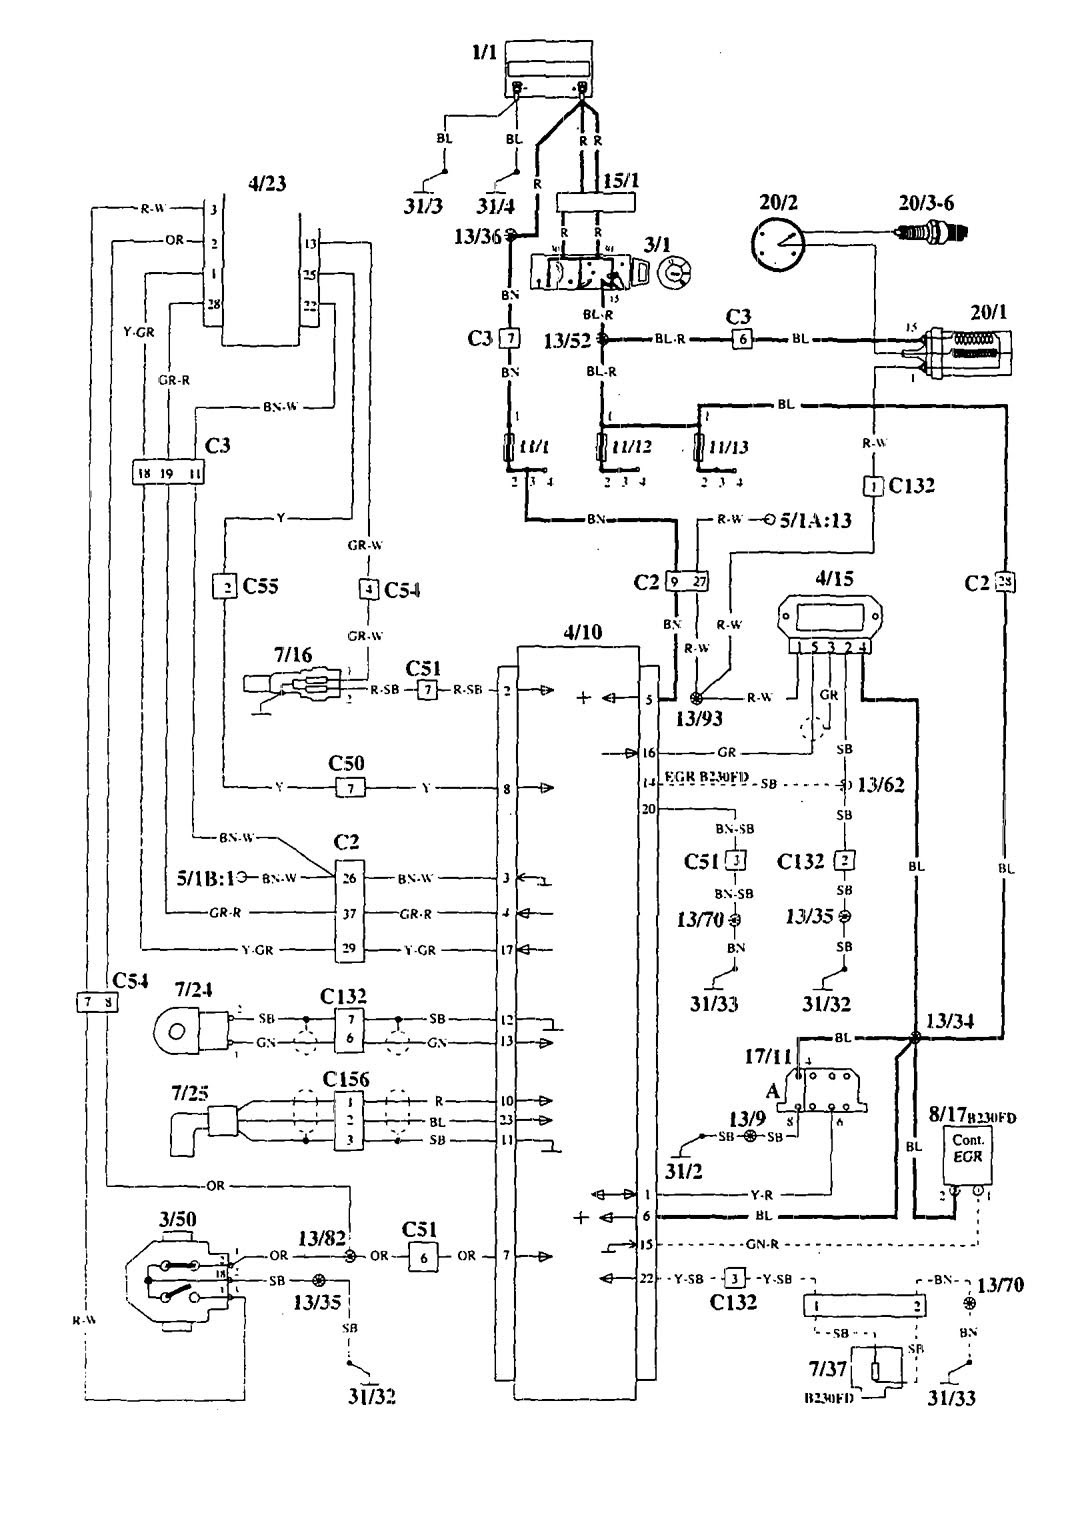 Diagram Jcb 940 Wiring Diagram Full Version Hd Quality Wiring Diagram Sitexplumb Caditwergi It